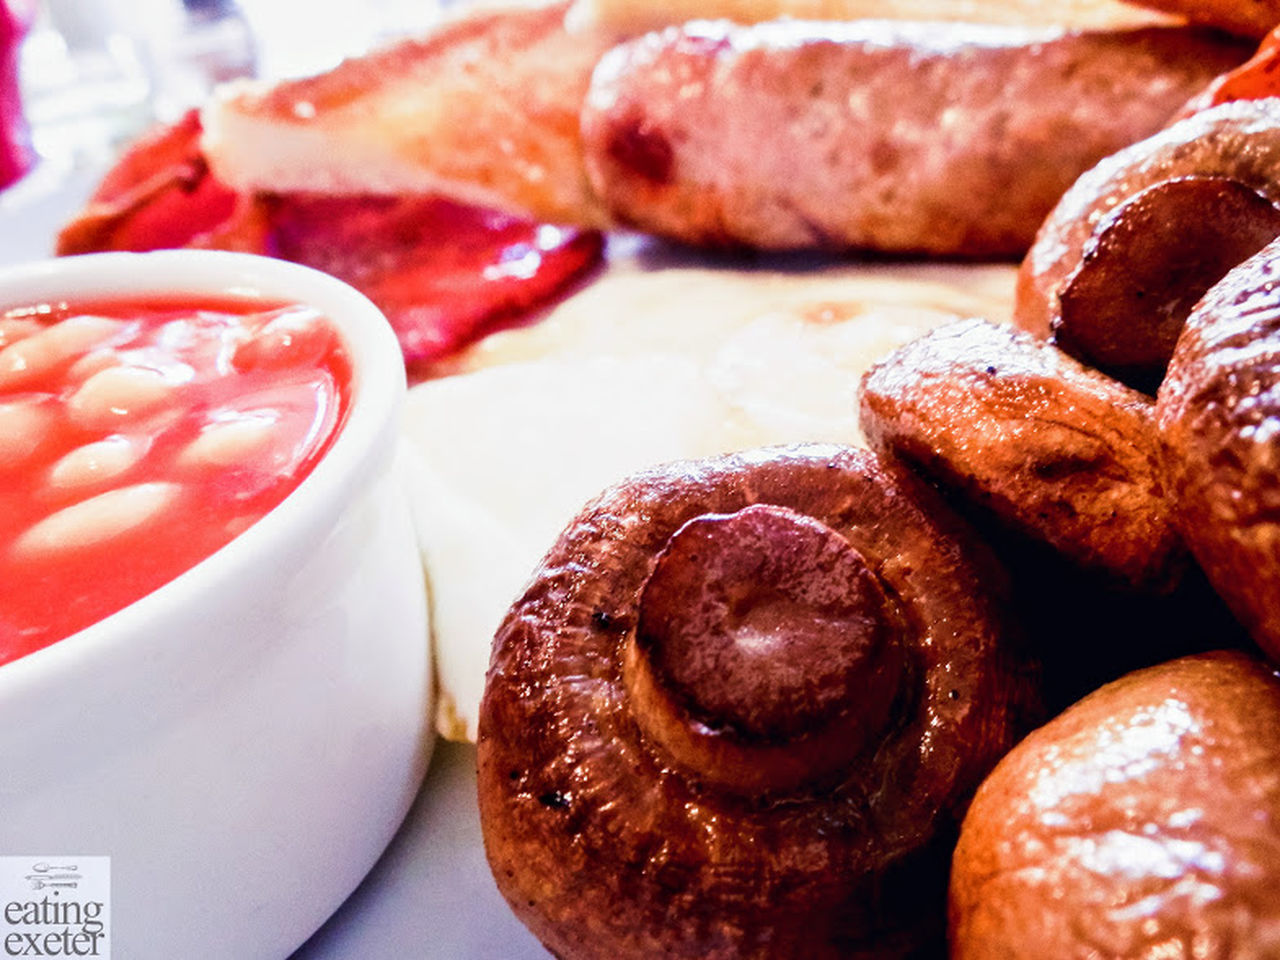 Baked Beans Bread Breakfast, Close-up Day English Breakfast Food Food And Drink Freshness Fried Breakfast Indoors  Indulgence Mushroom_pictures Mushrooms Mushrooms 🍄🍄 No People Plate Ramikins Ready-to-eat Serving Size